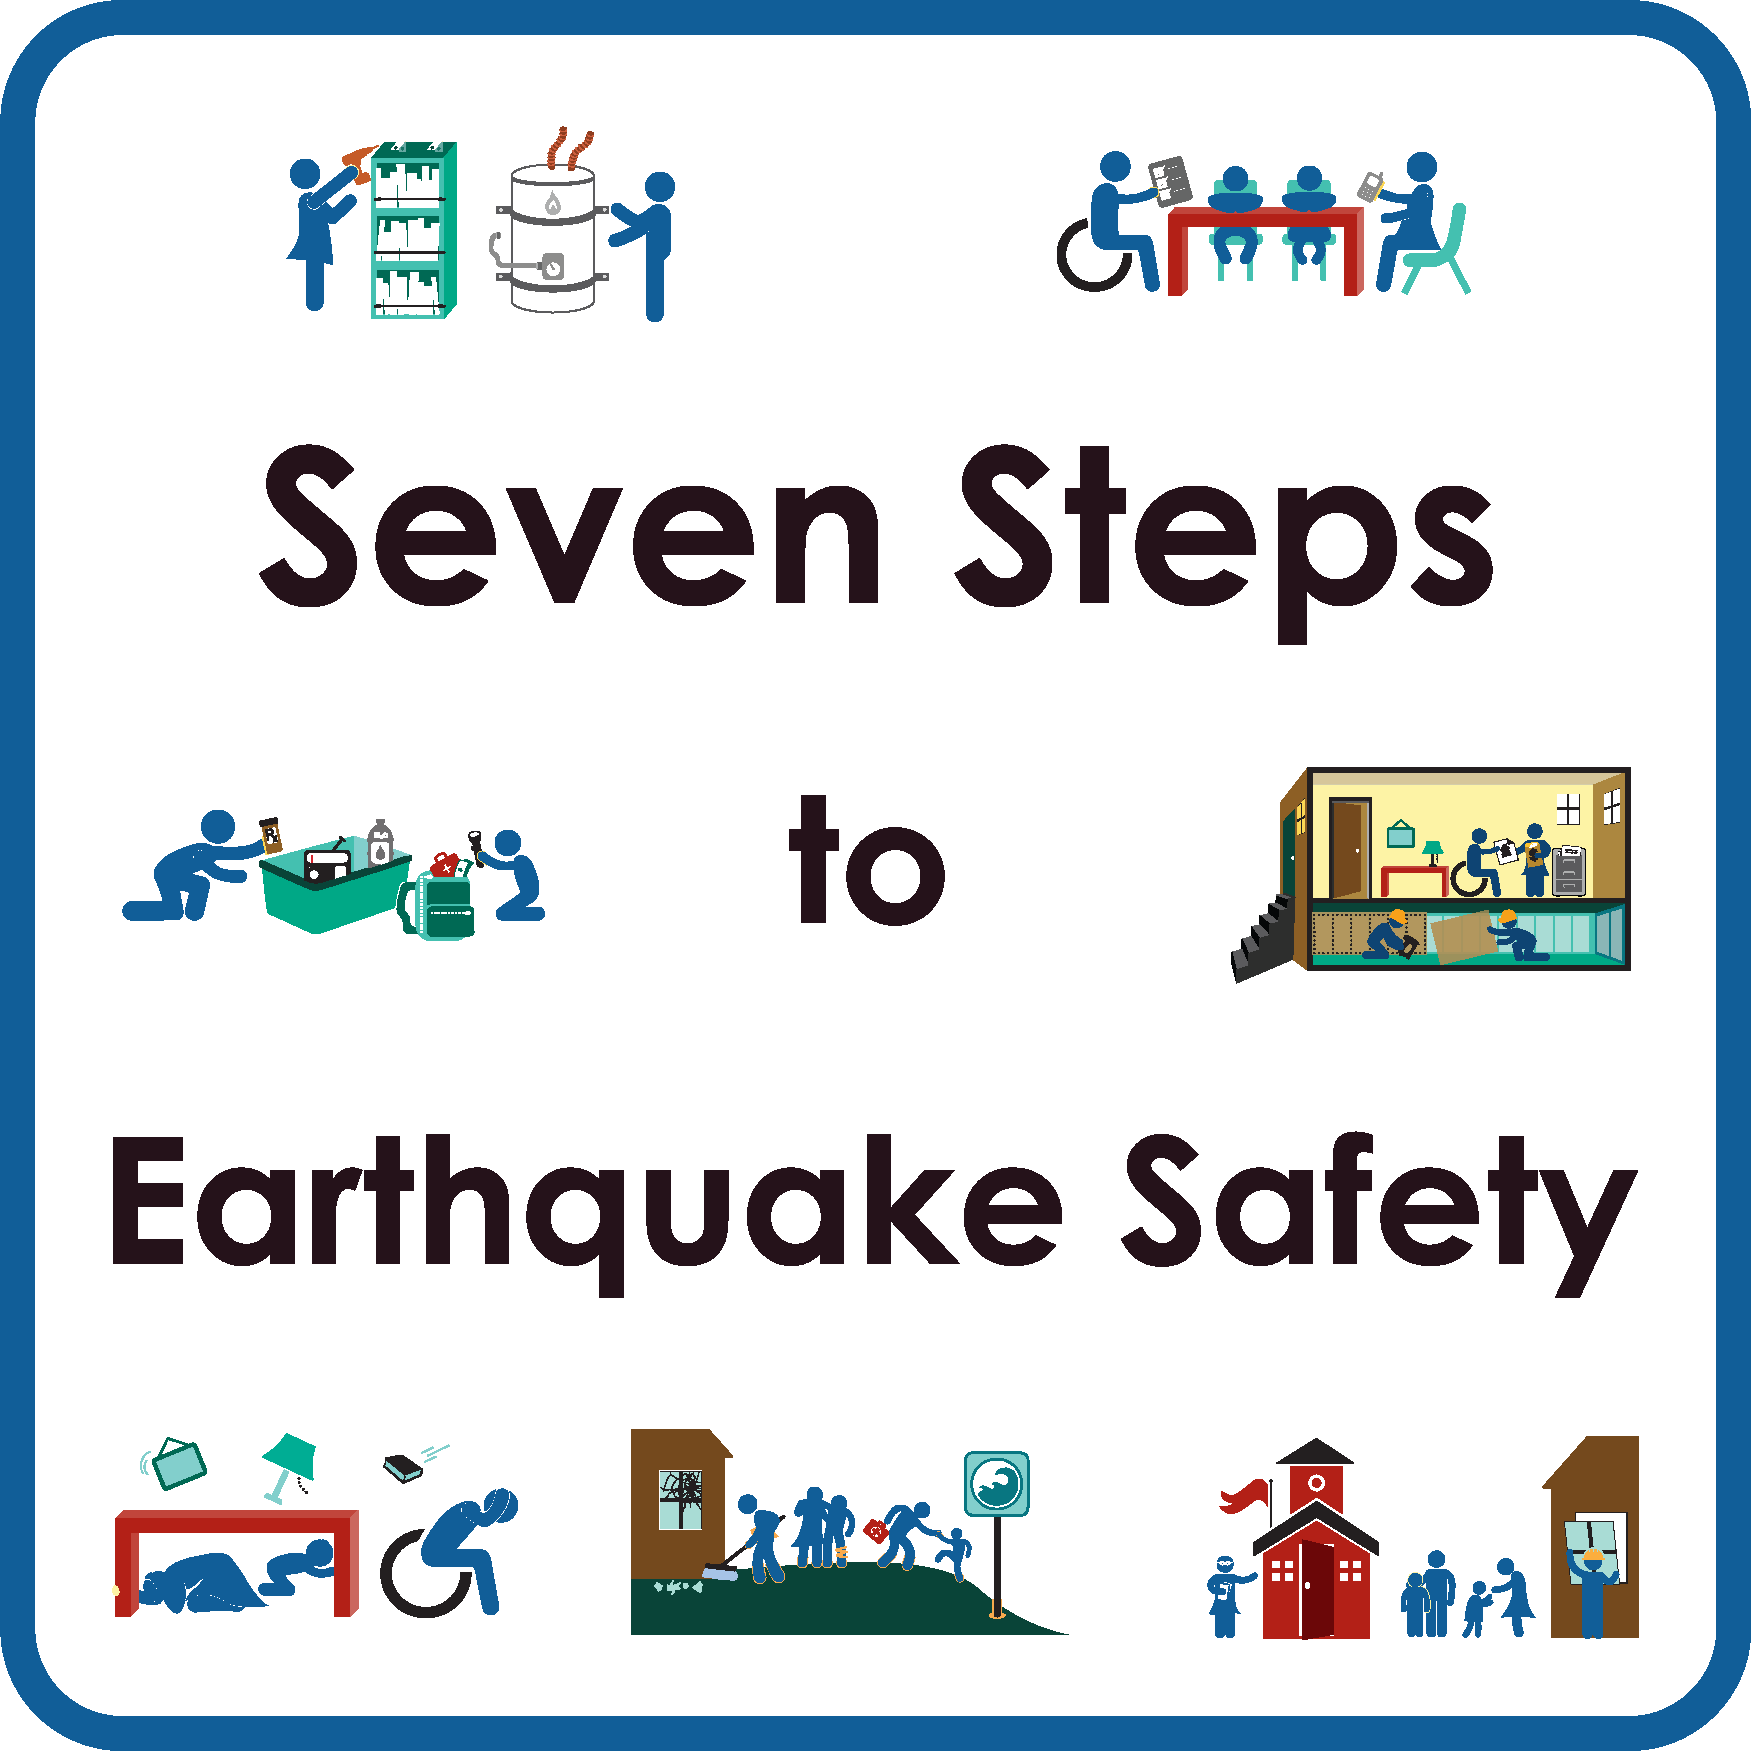 Seven Steps to Earthquake Safety title and graphics